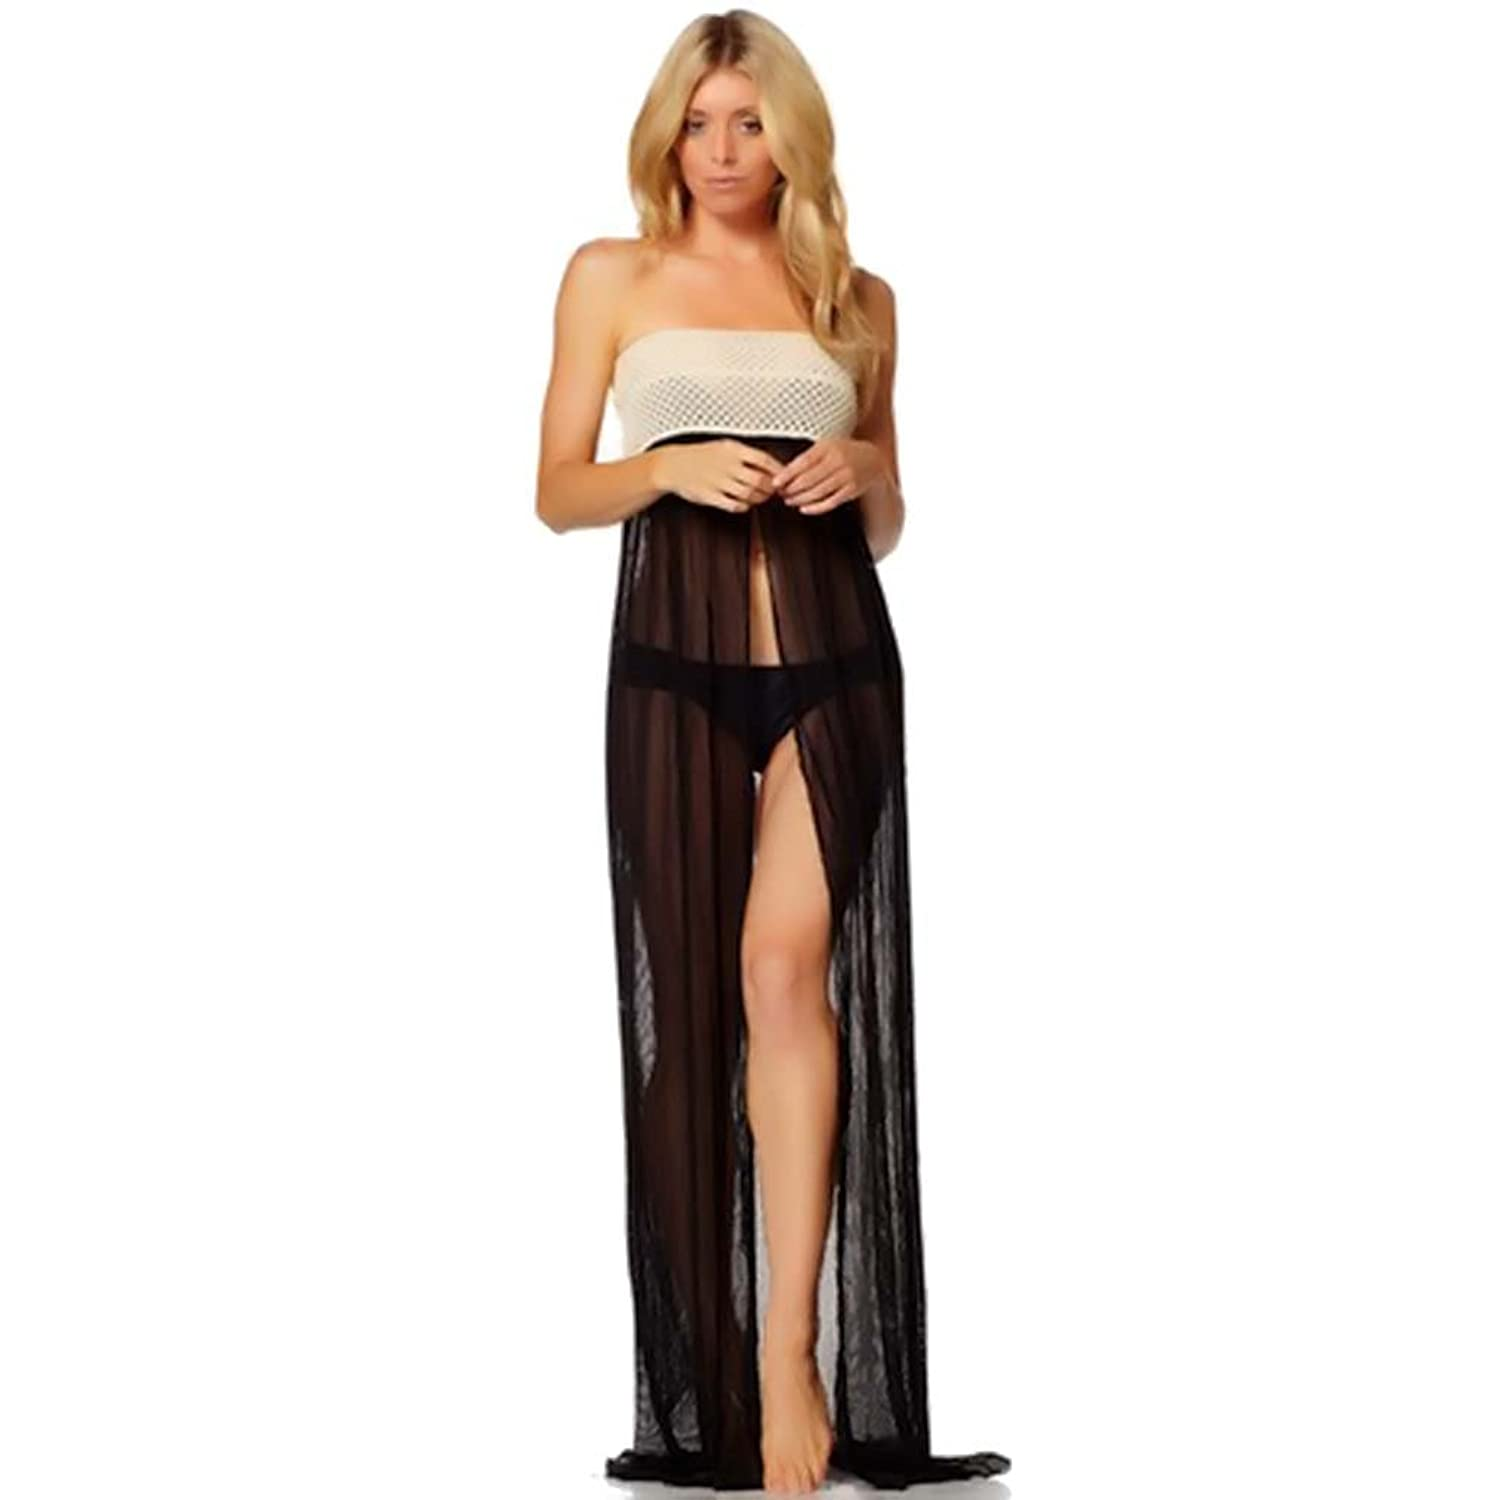 Strapless Beach Cover up Maxi Beach Cover-up Dress